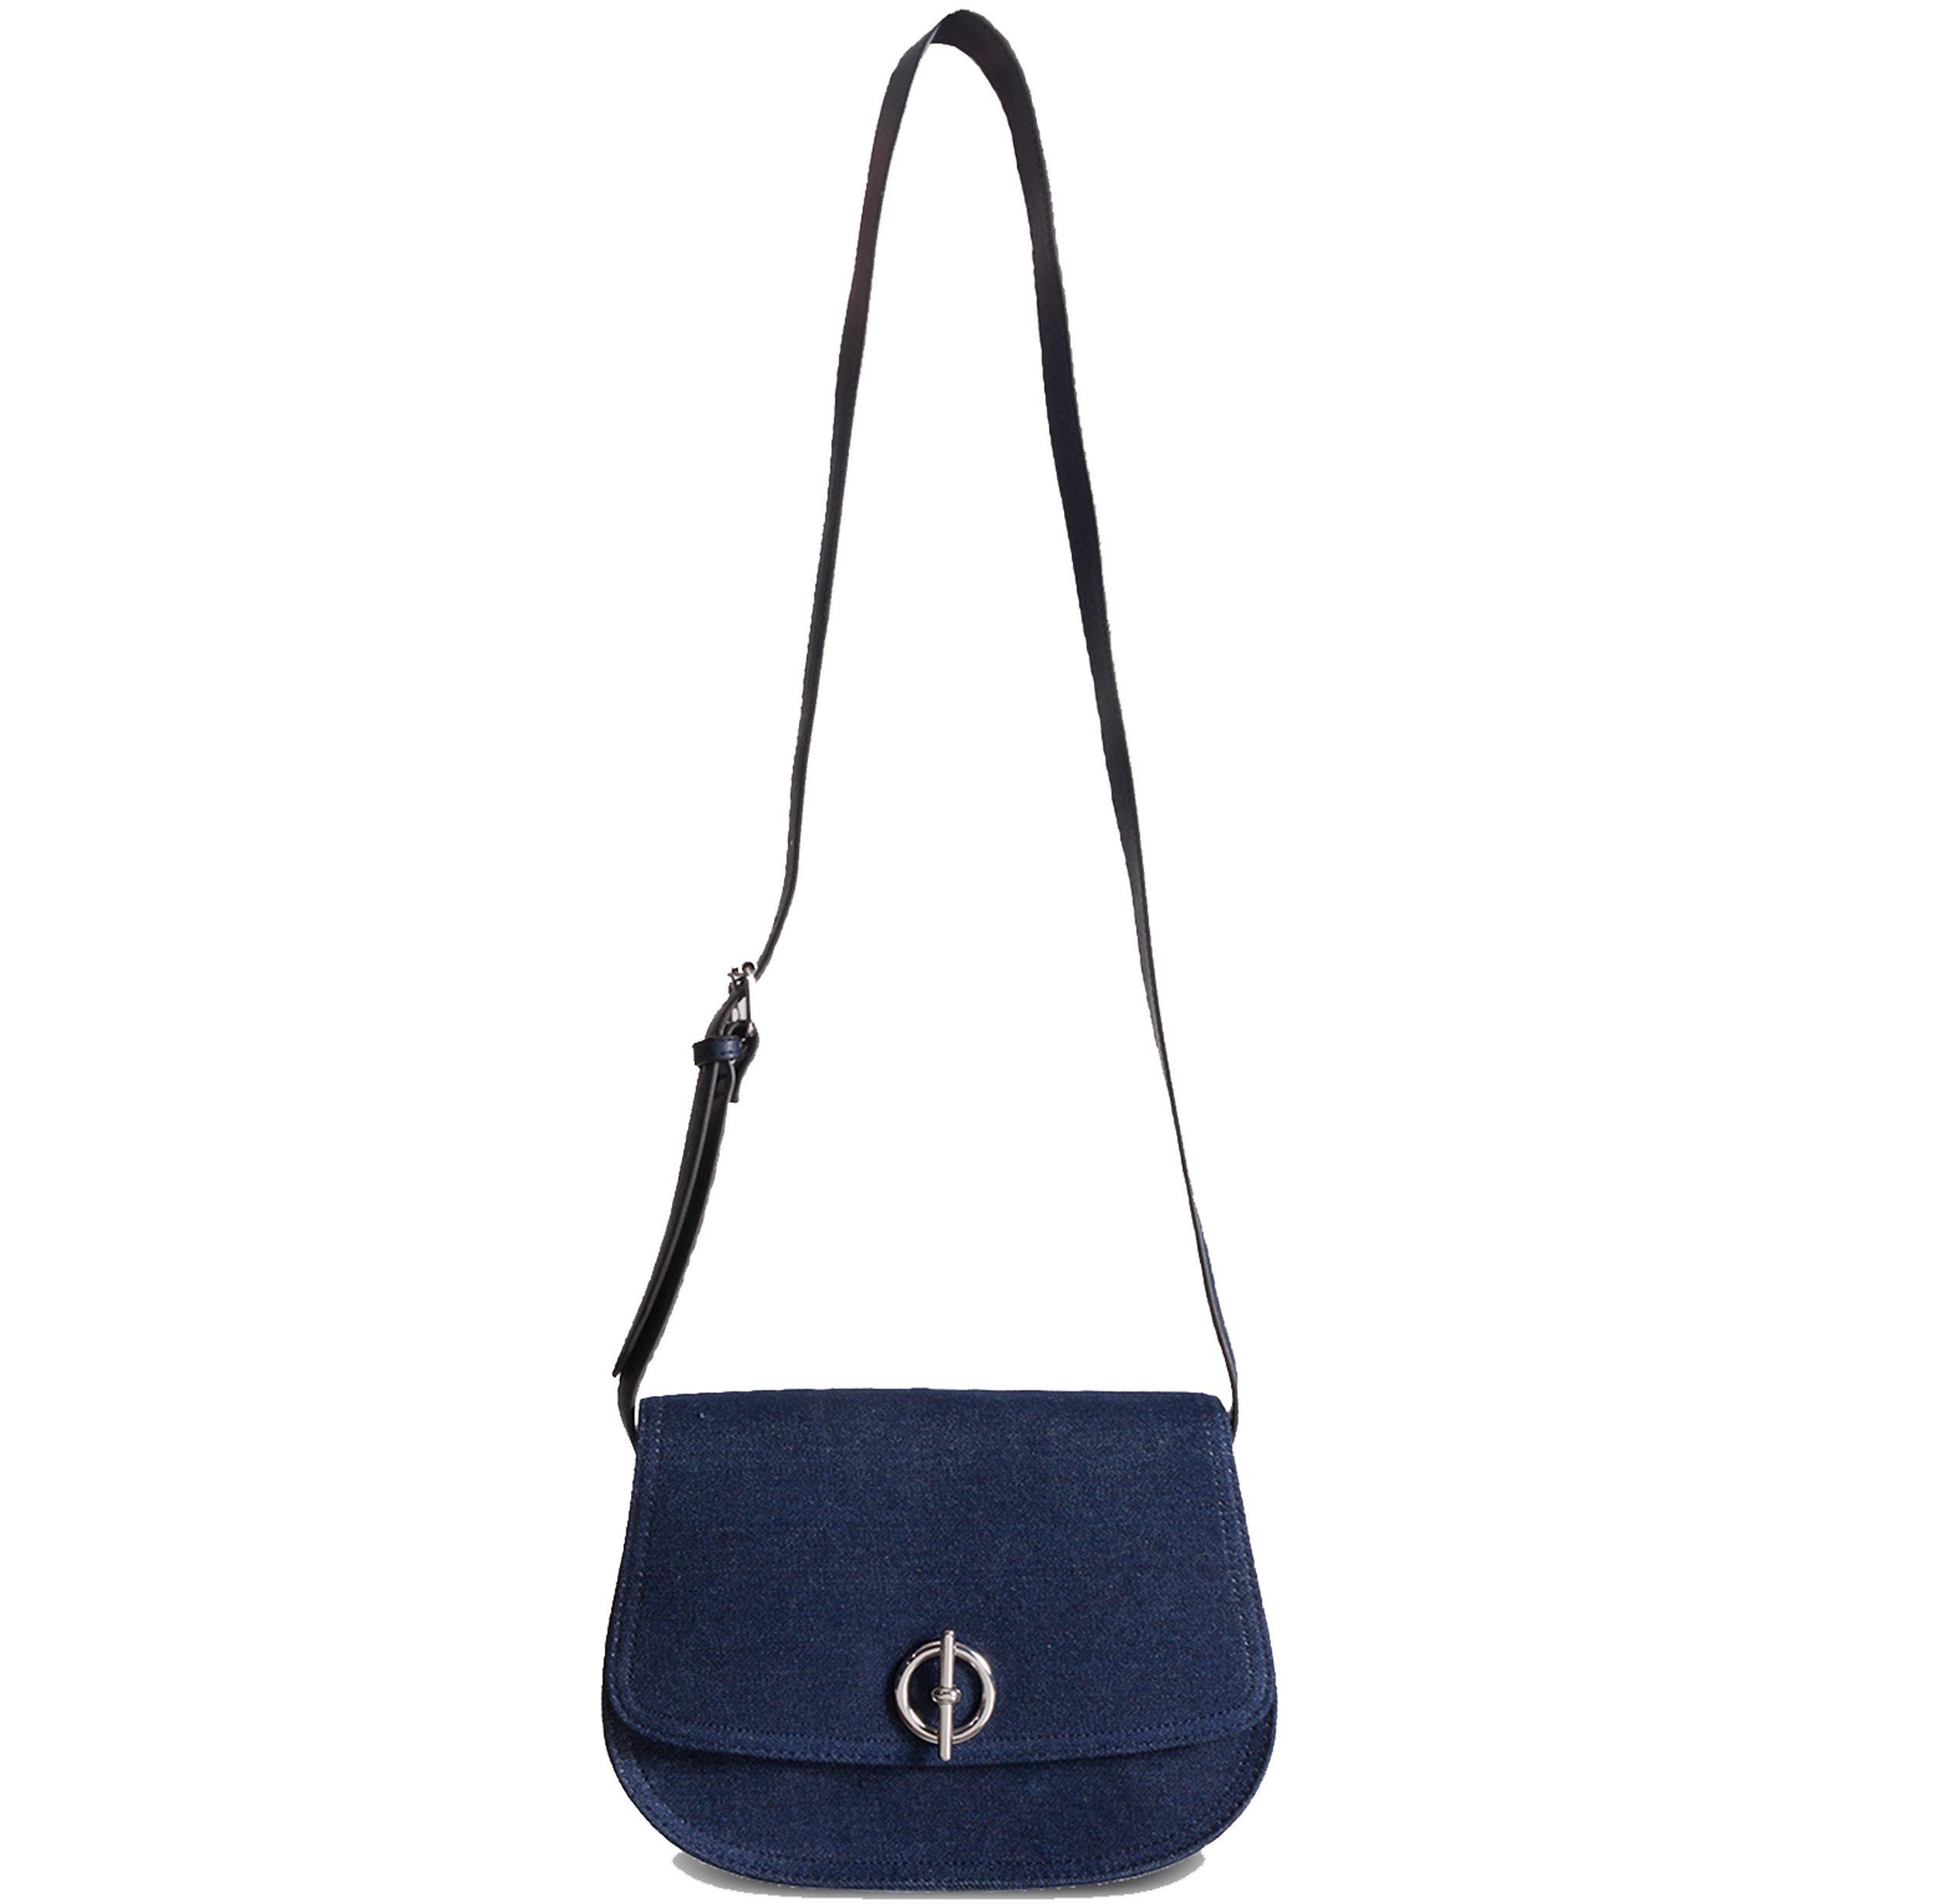 Tu at Sainsbury's Navy Denim Saddle Bag